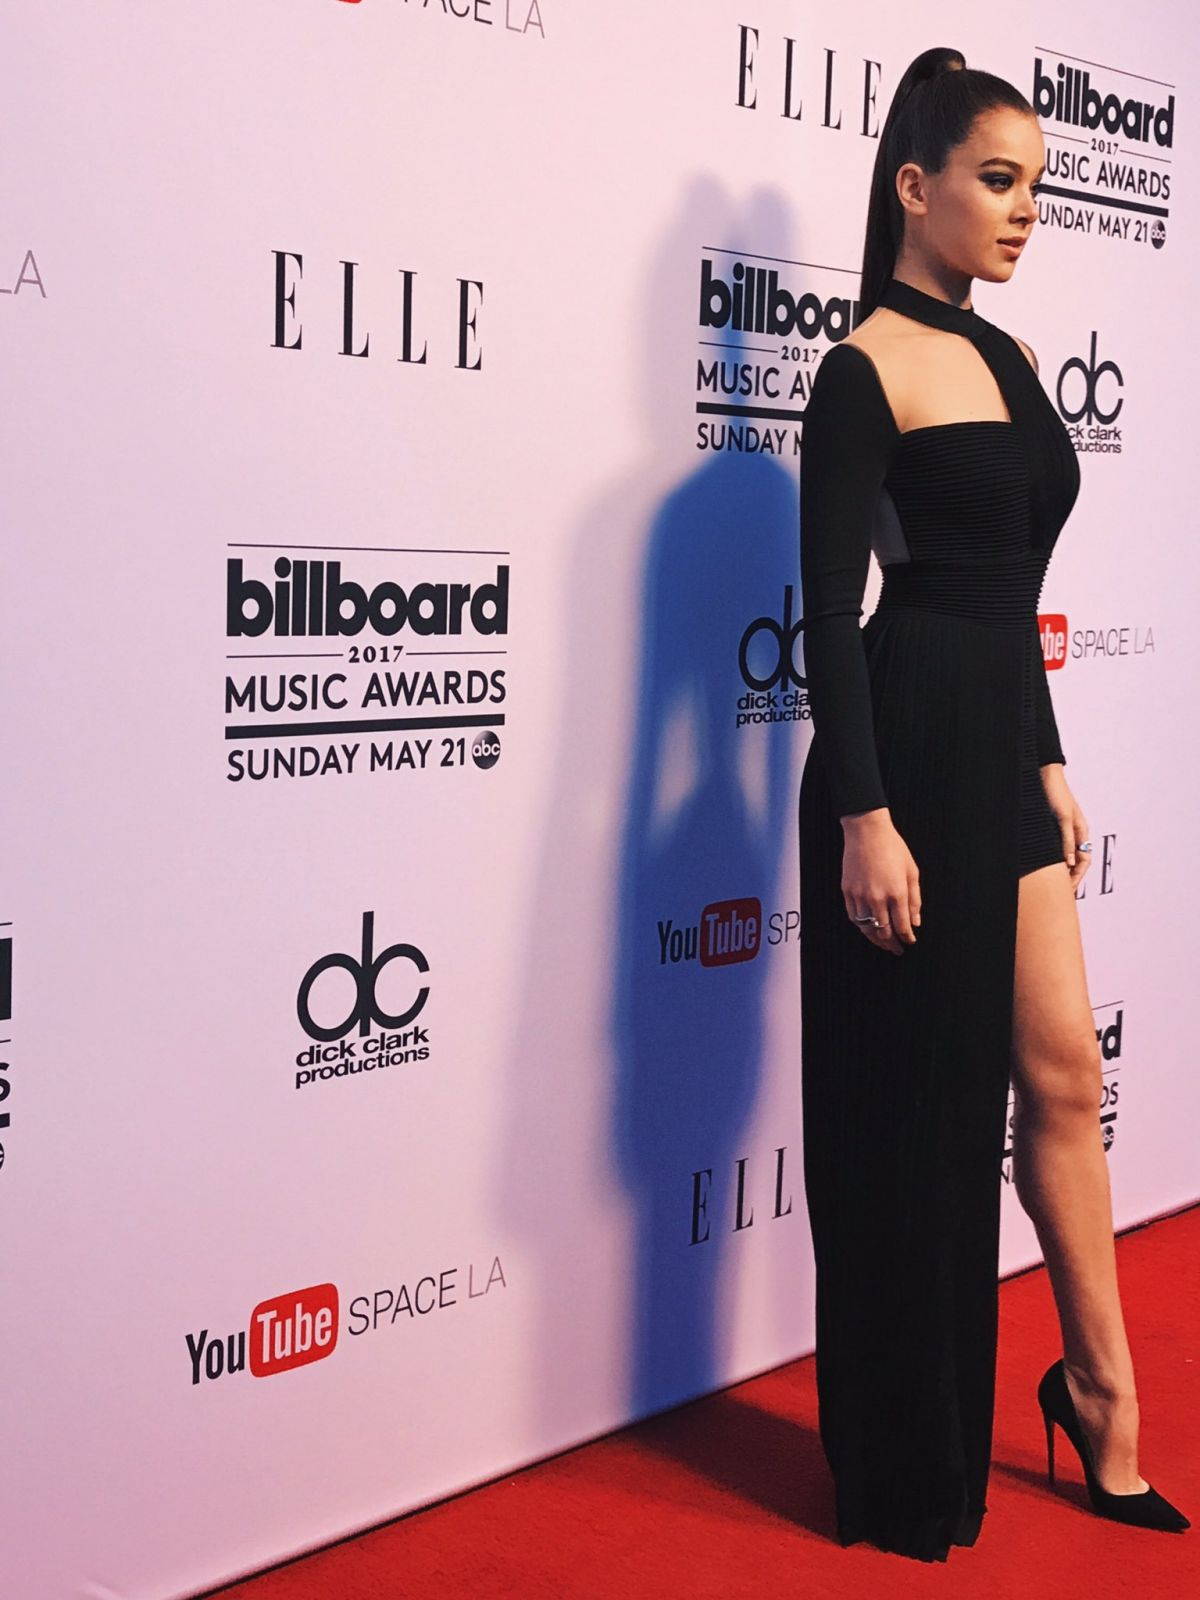 Billboard Music Awards 2016 The Best Hair And Makeup: HAILEE STEINFELD At Billboard Music Awards Women In Music